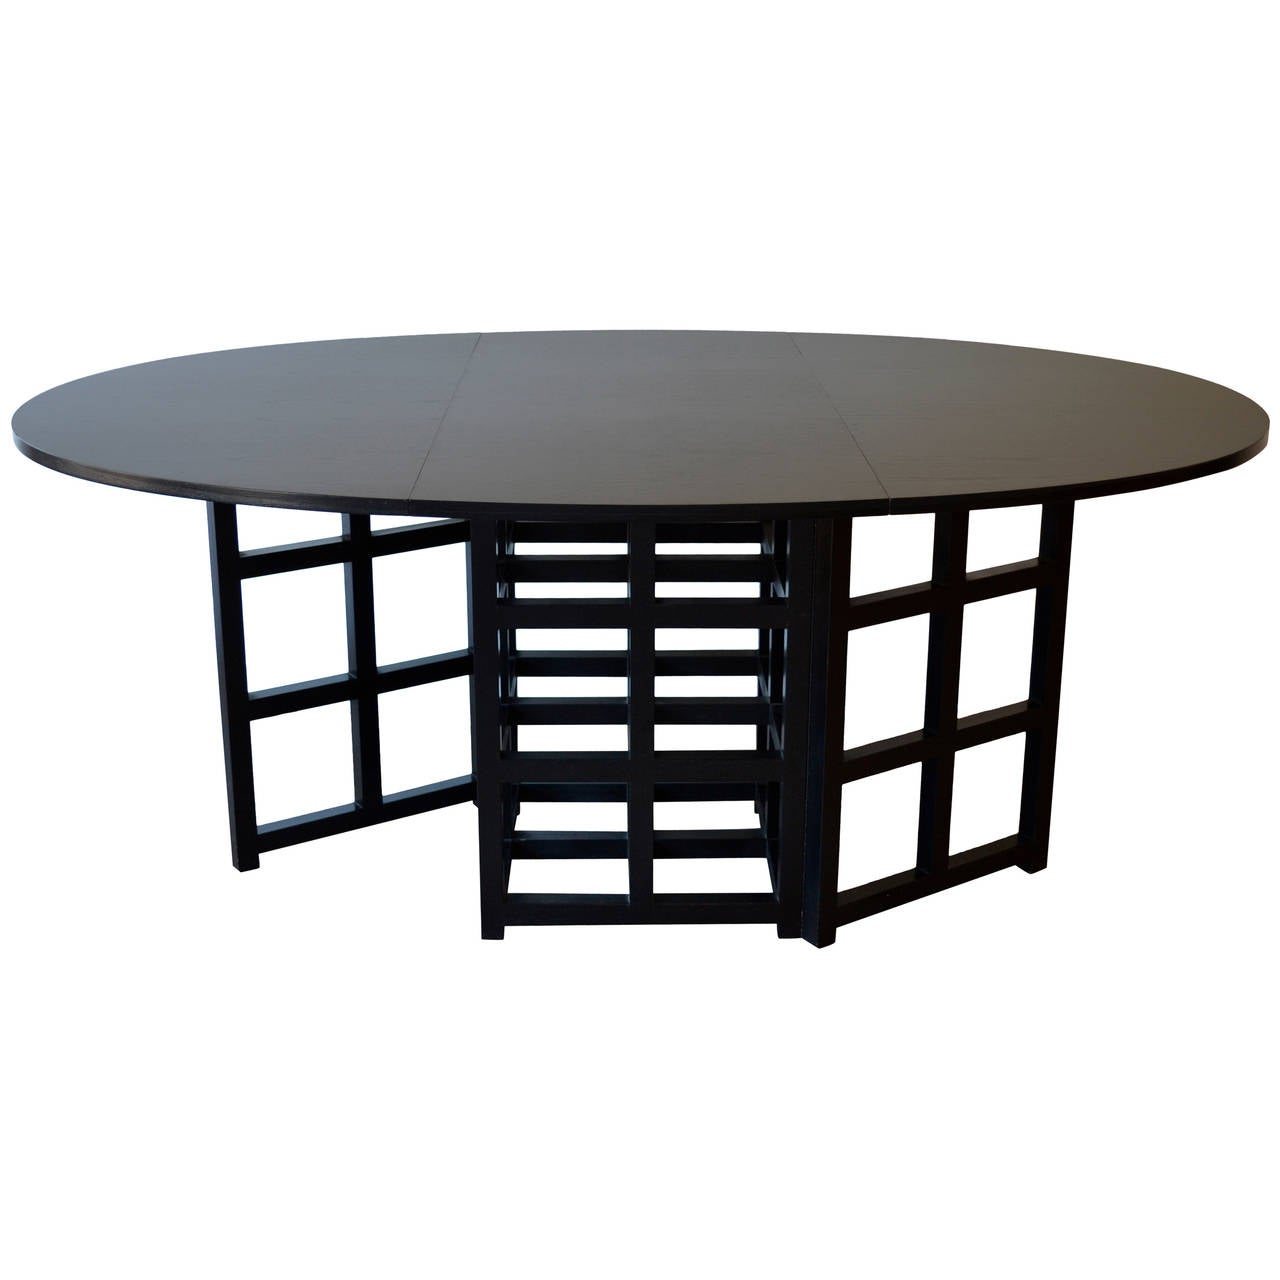 Oval Black Drop Leaf Dining Table By Charles Rennie Mackintosh At 1stdibs